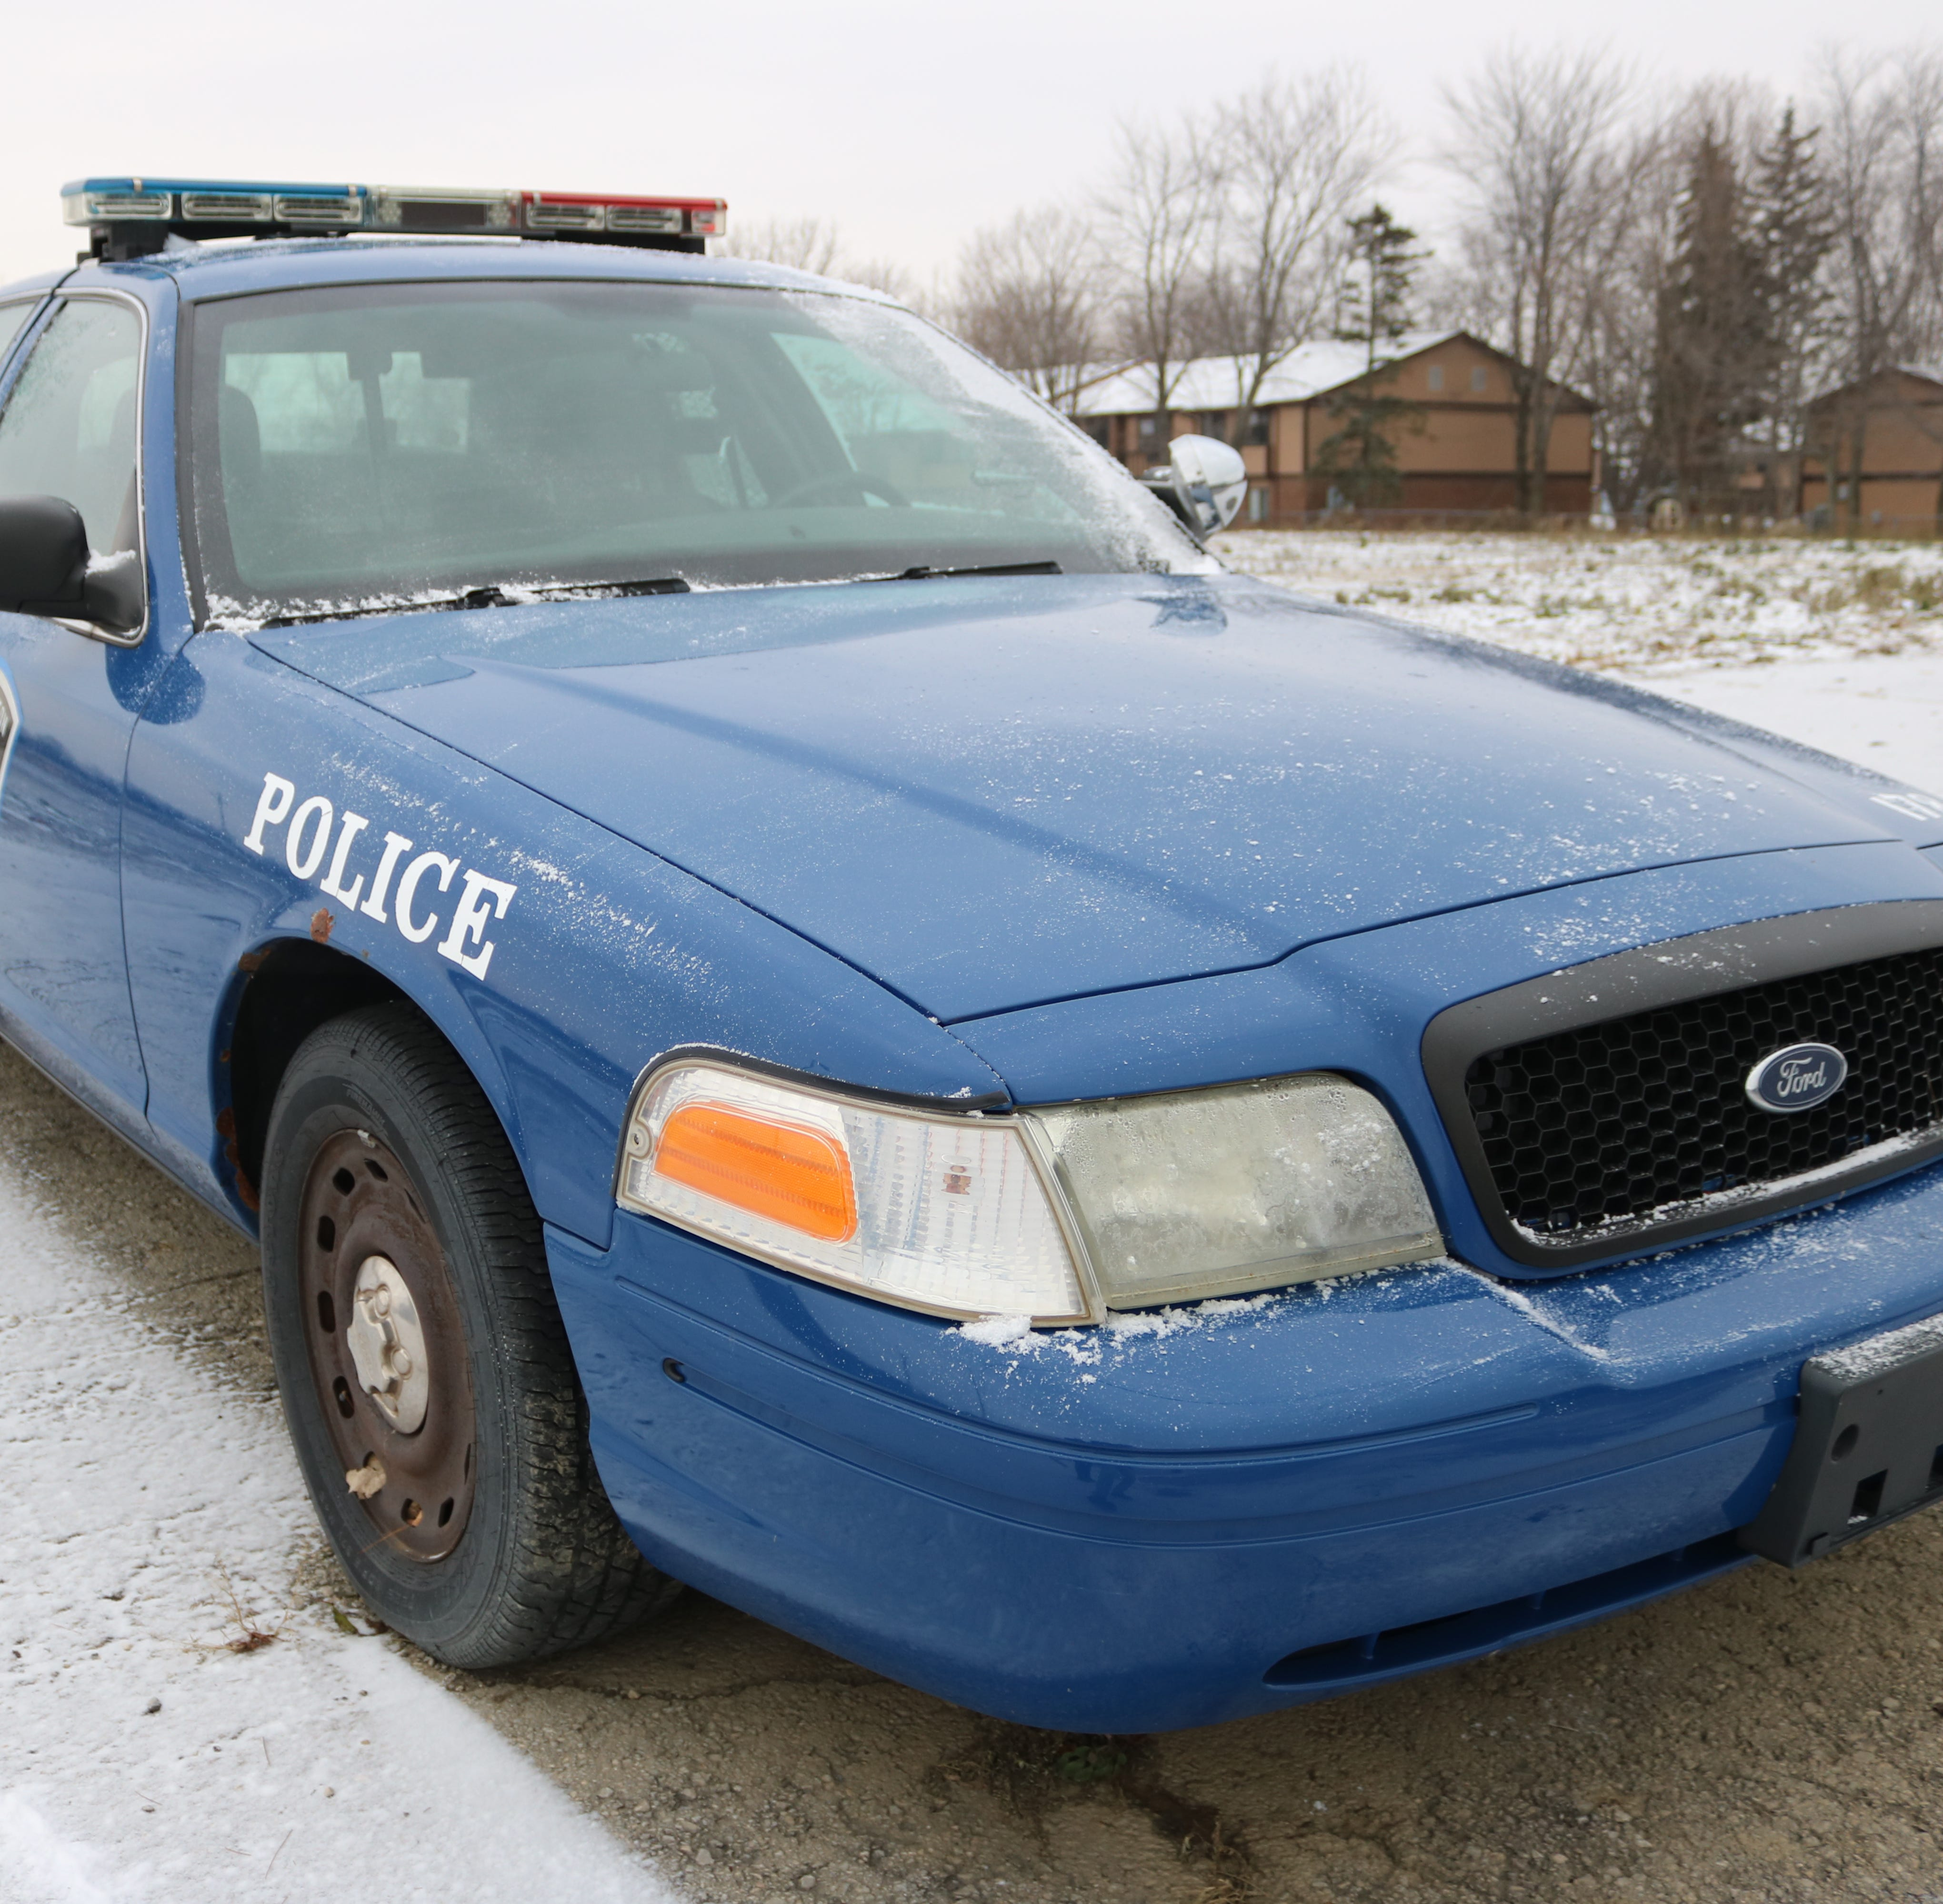 Port Clinton set to buy 4 new police vehicles